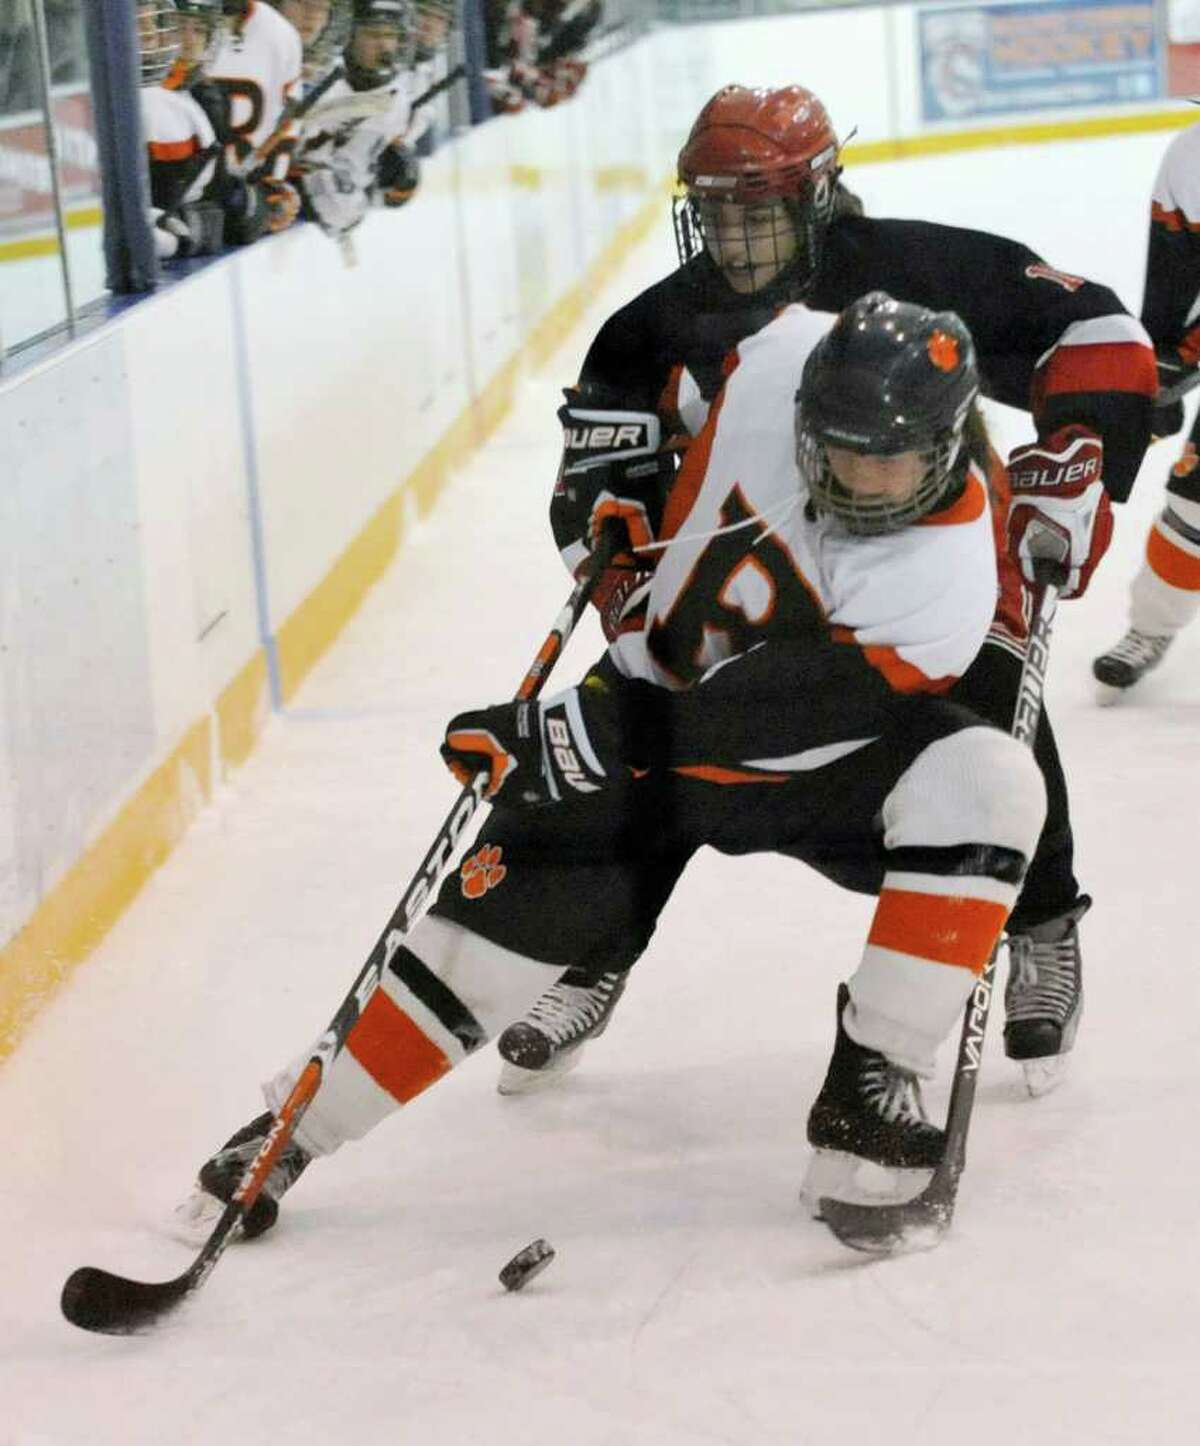 Ridgefield's Meghan Galloway shields the puck from New Canaan's Holly Burwick during their game at the Ridgefield Winter Garden on Wednesday, Feb. 1, 2012. New Canaan won 4-2.